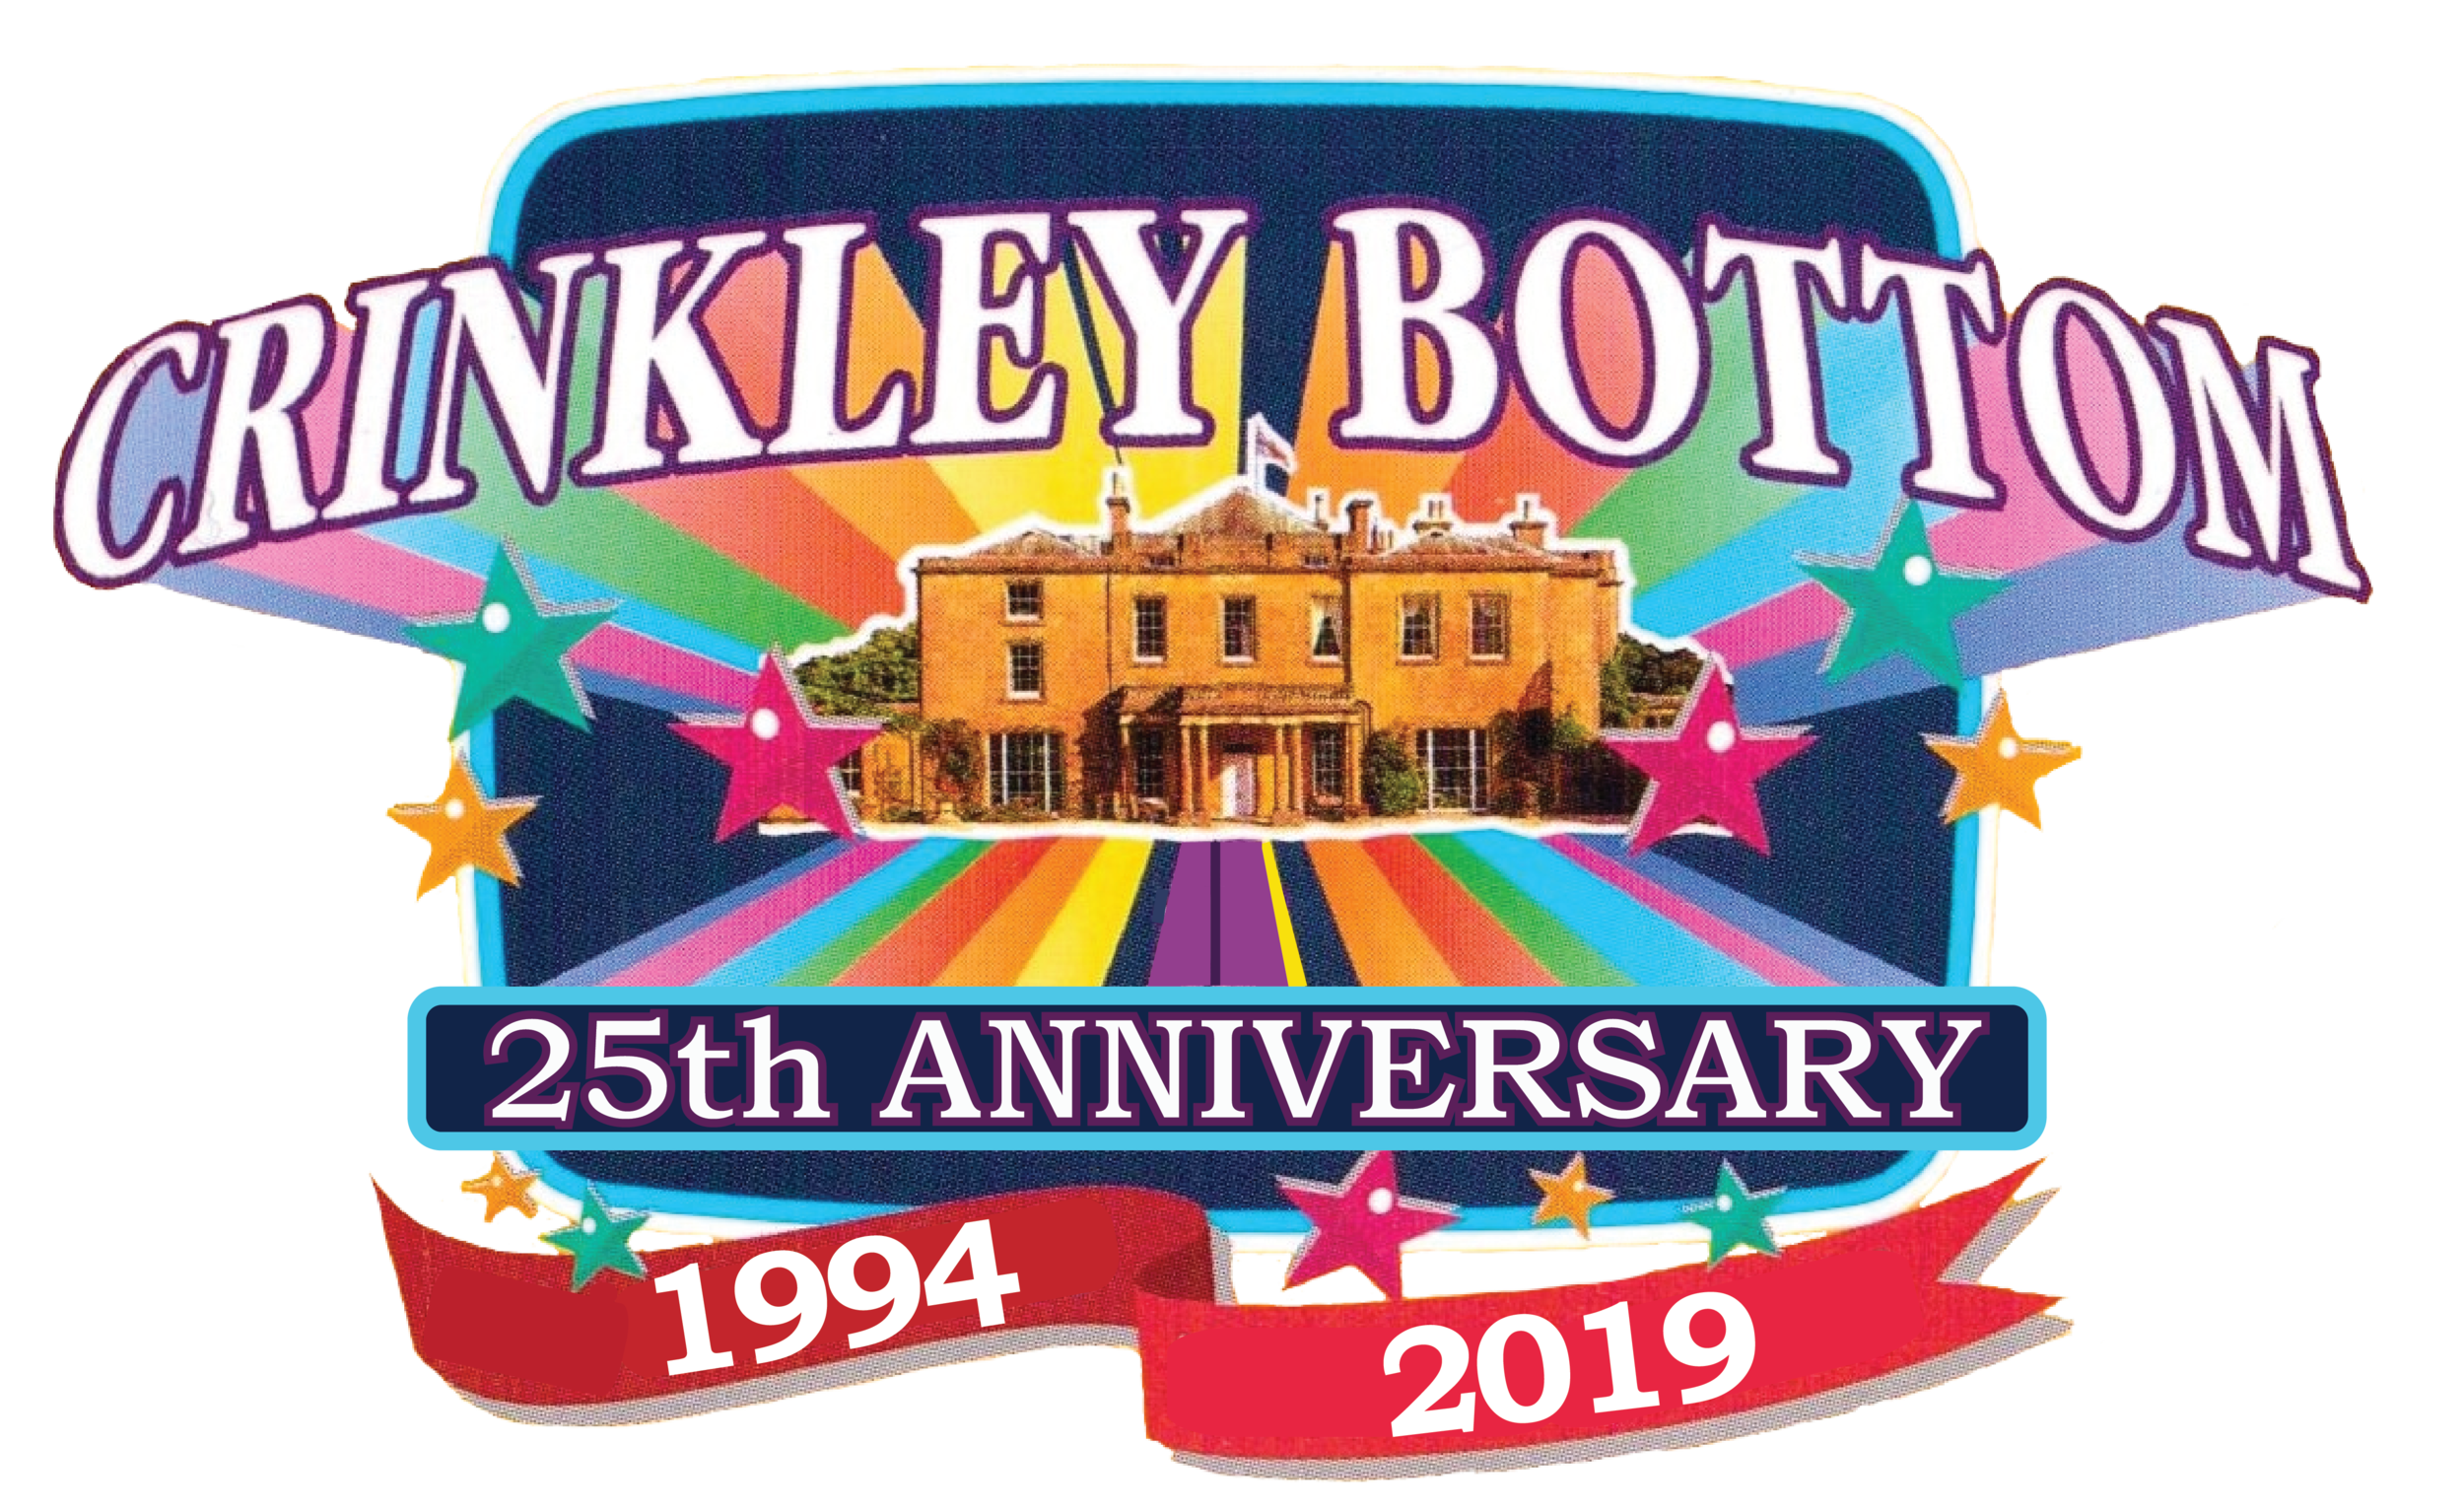 Crinkley Bottom 25th Anniversary Logo.png